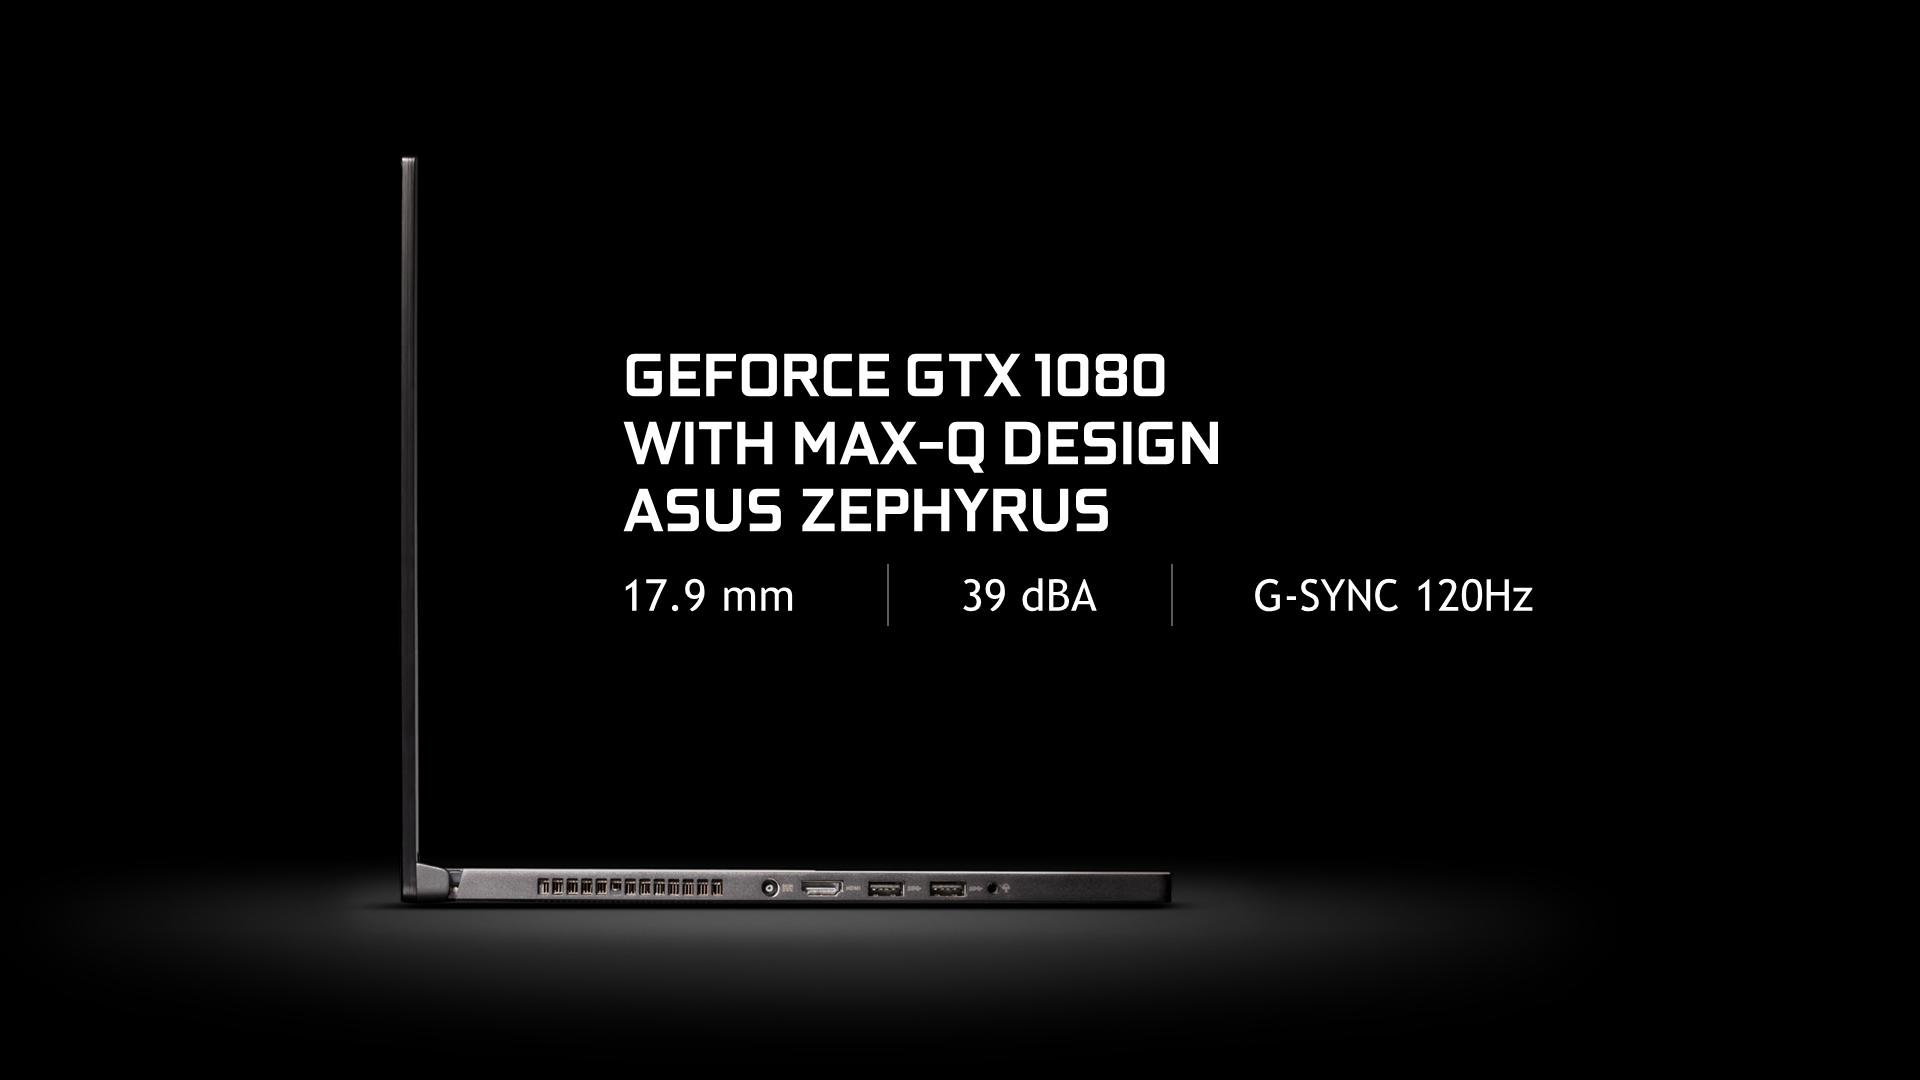 Introducing GeForce GTX Laptops with Max-Q Design: Thin